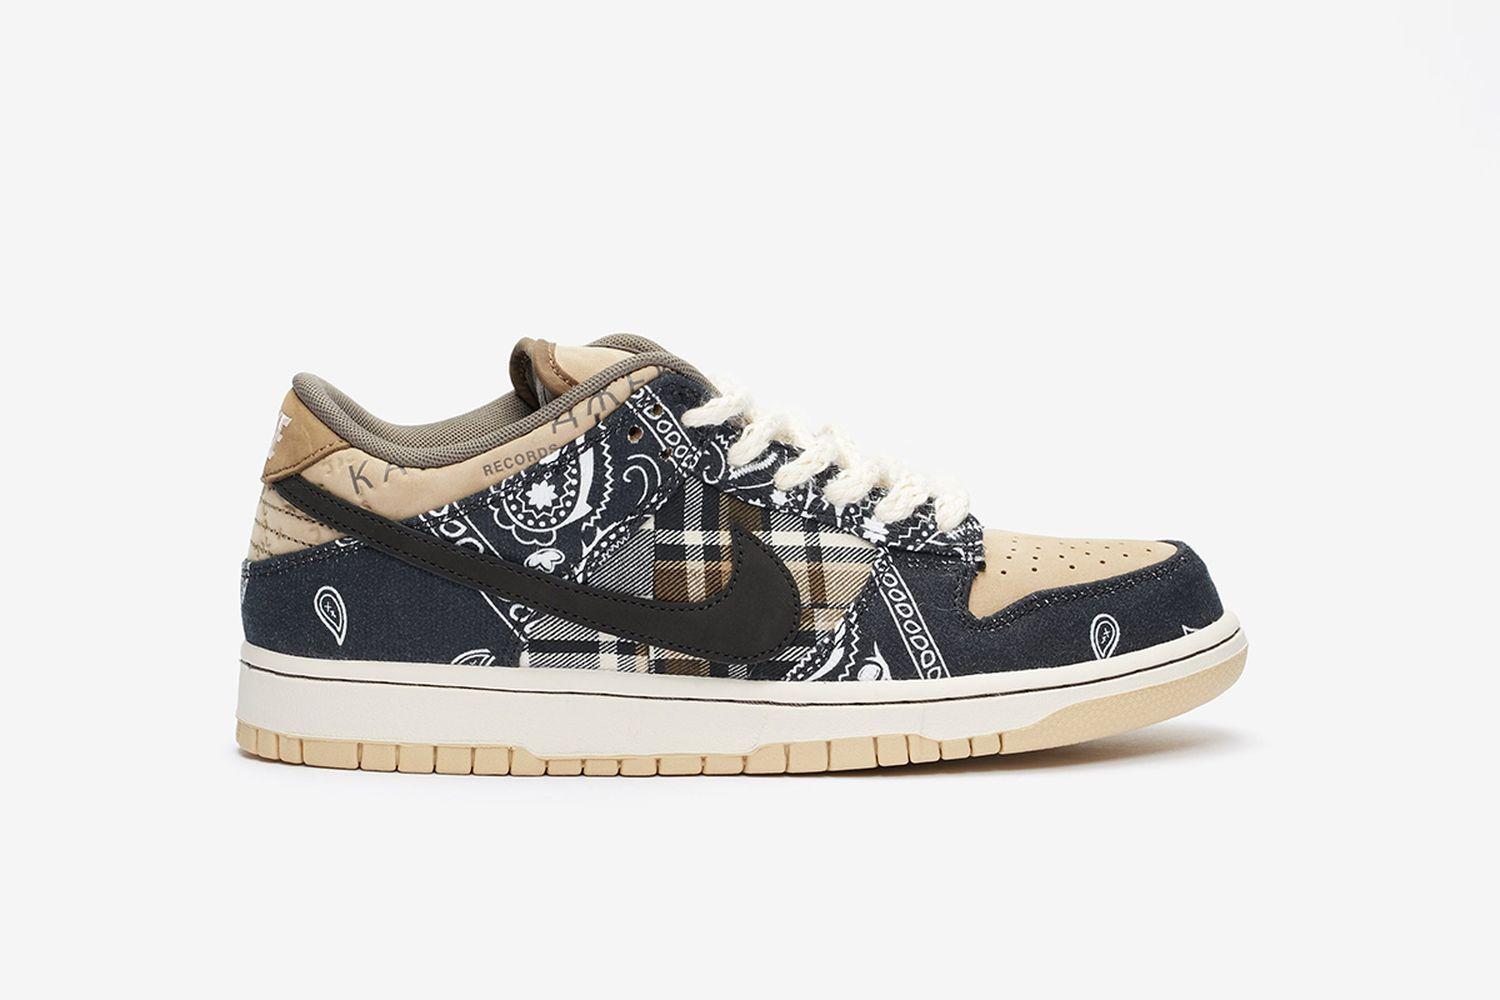 Dunk Low PRM QS